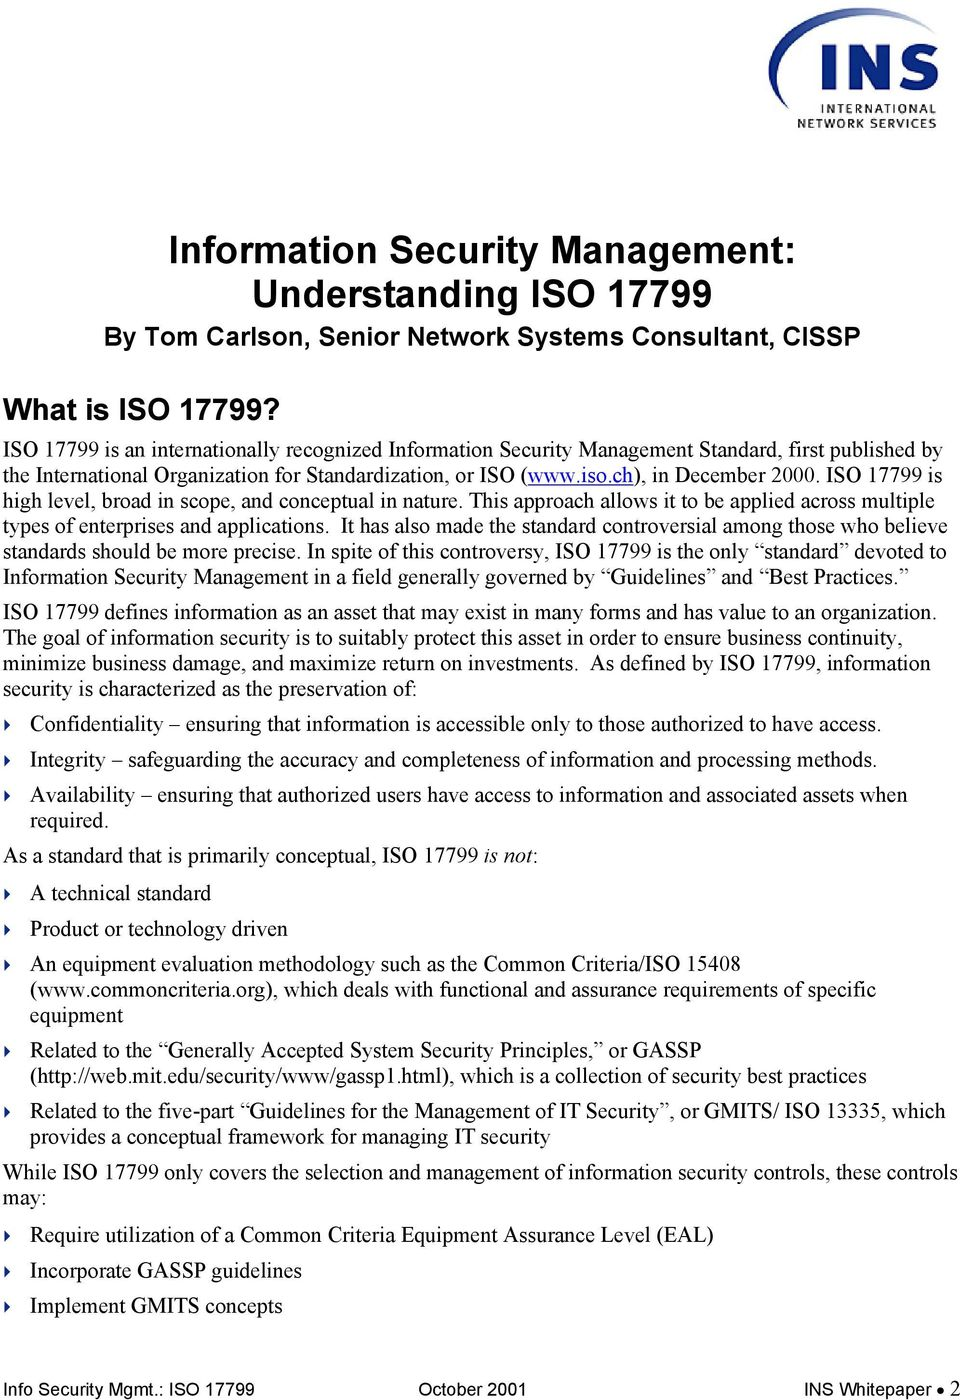 ISO 17799 is high level, broad in scope, and conceptual in nature. This approach allows it to be applied across multiple types of enterprises and applications.